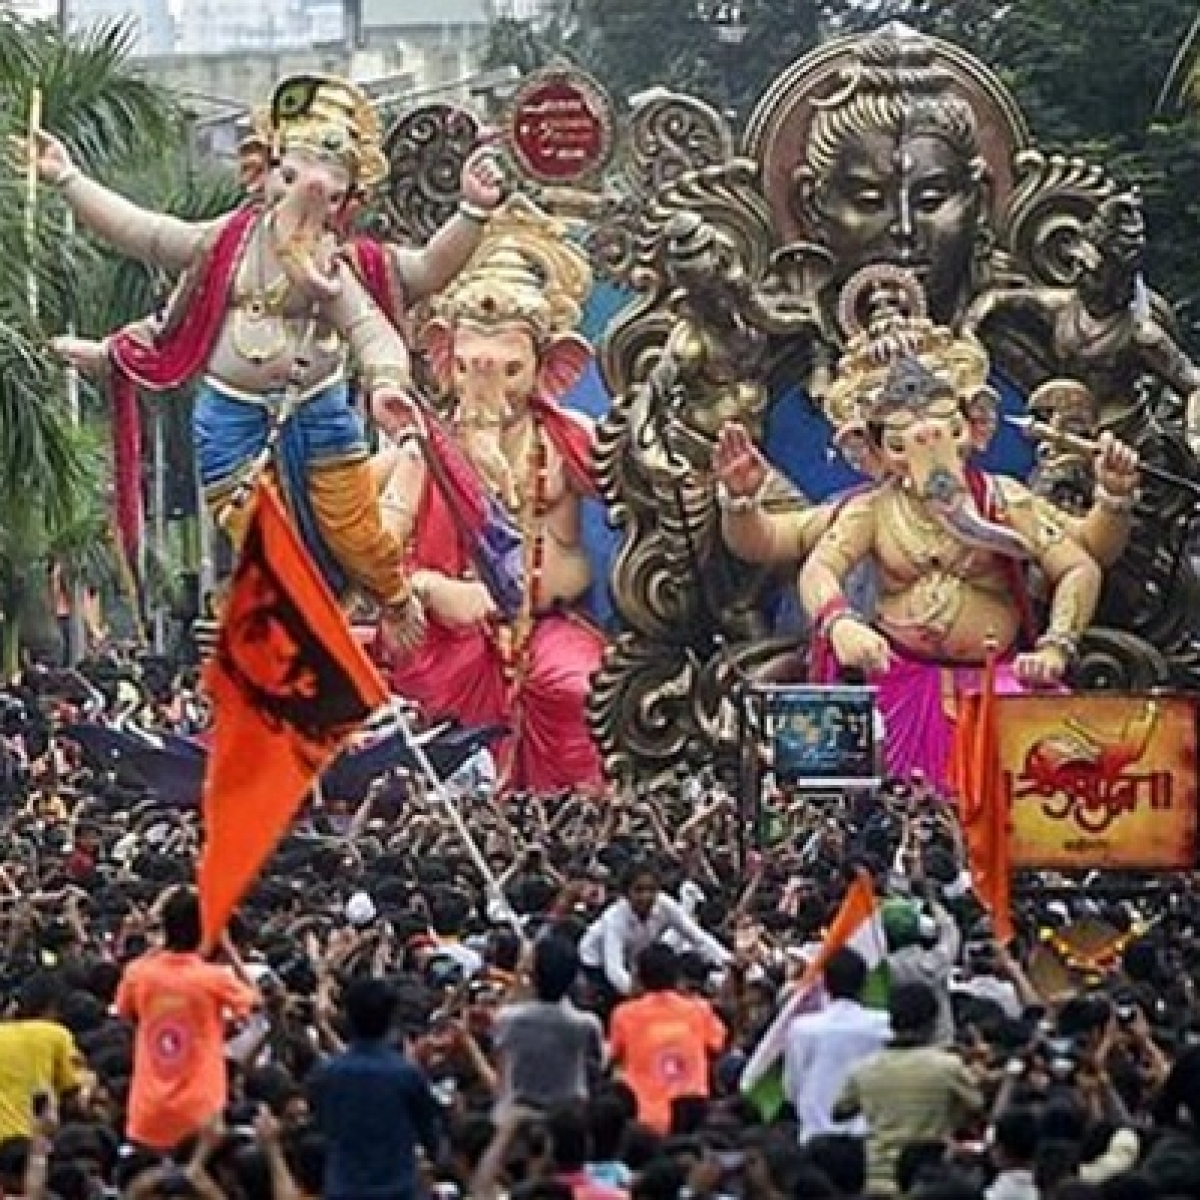 Ganesh Chaturthi 2019: This is the number you need to call if Ganesh Mandals break the rules